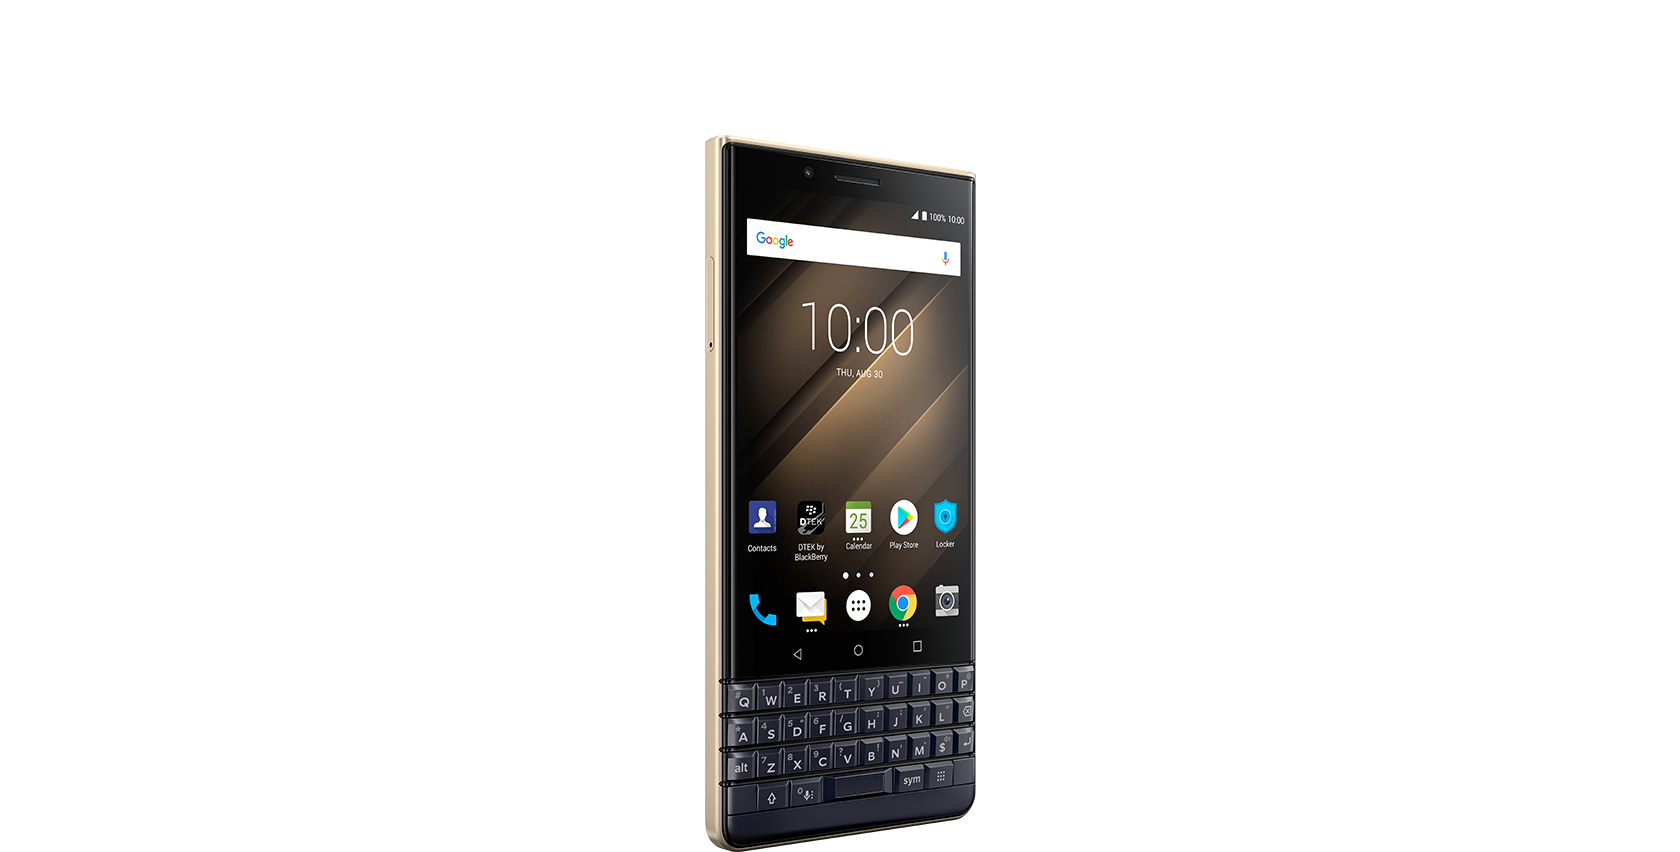 key 2 le champagne - BlackBerry KEY2 LE